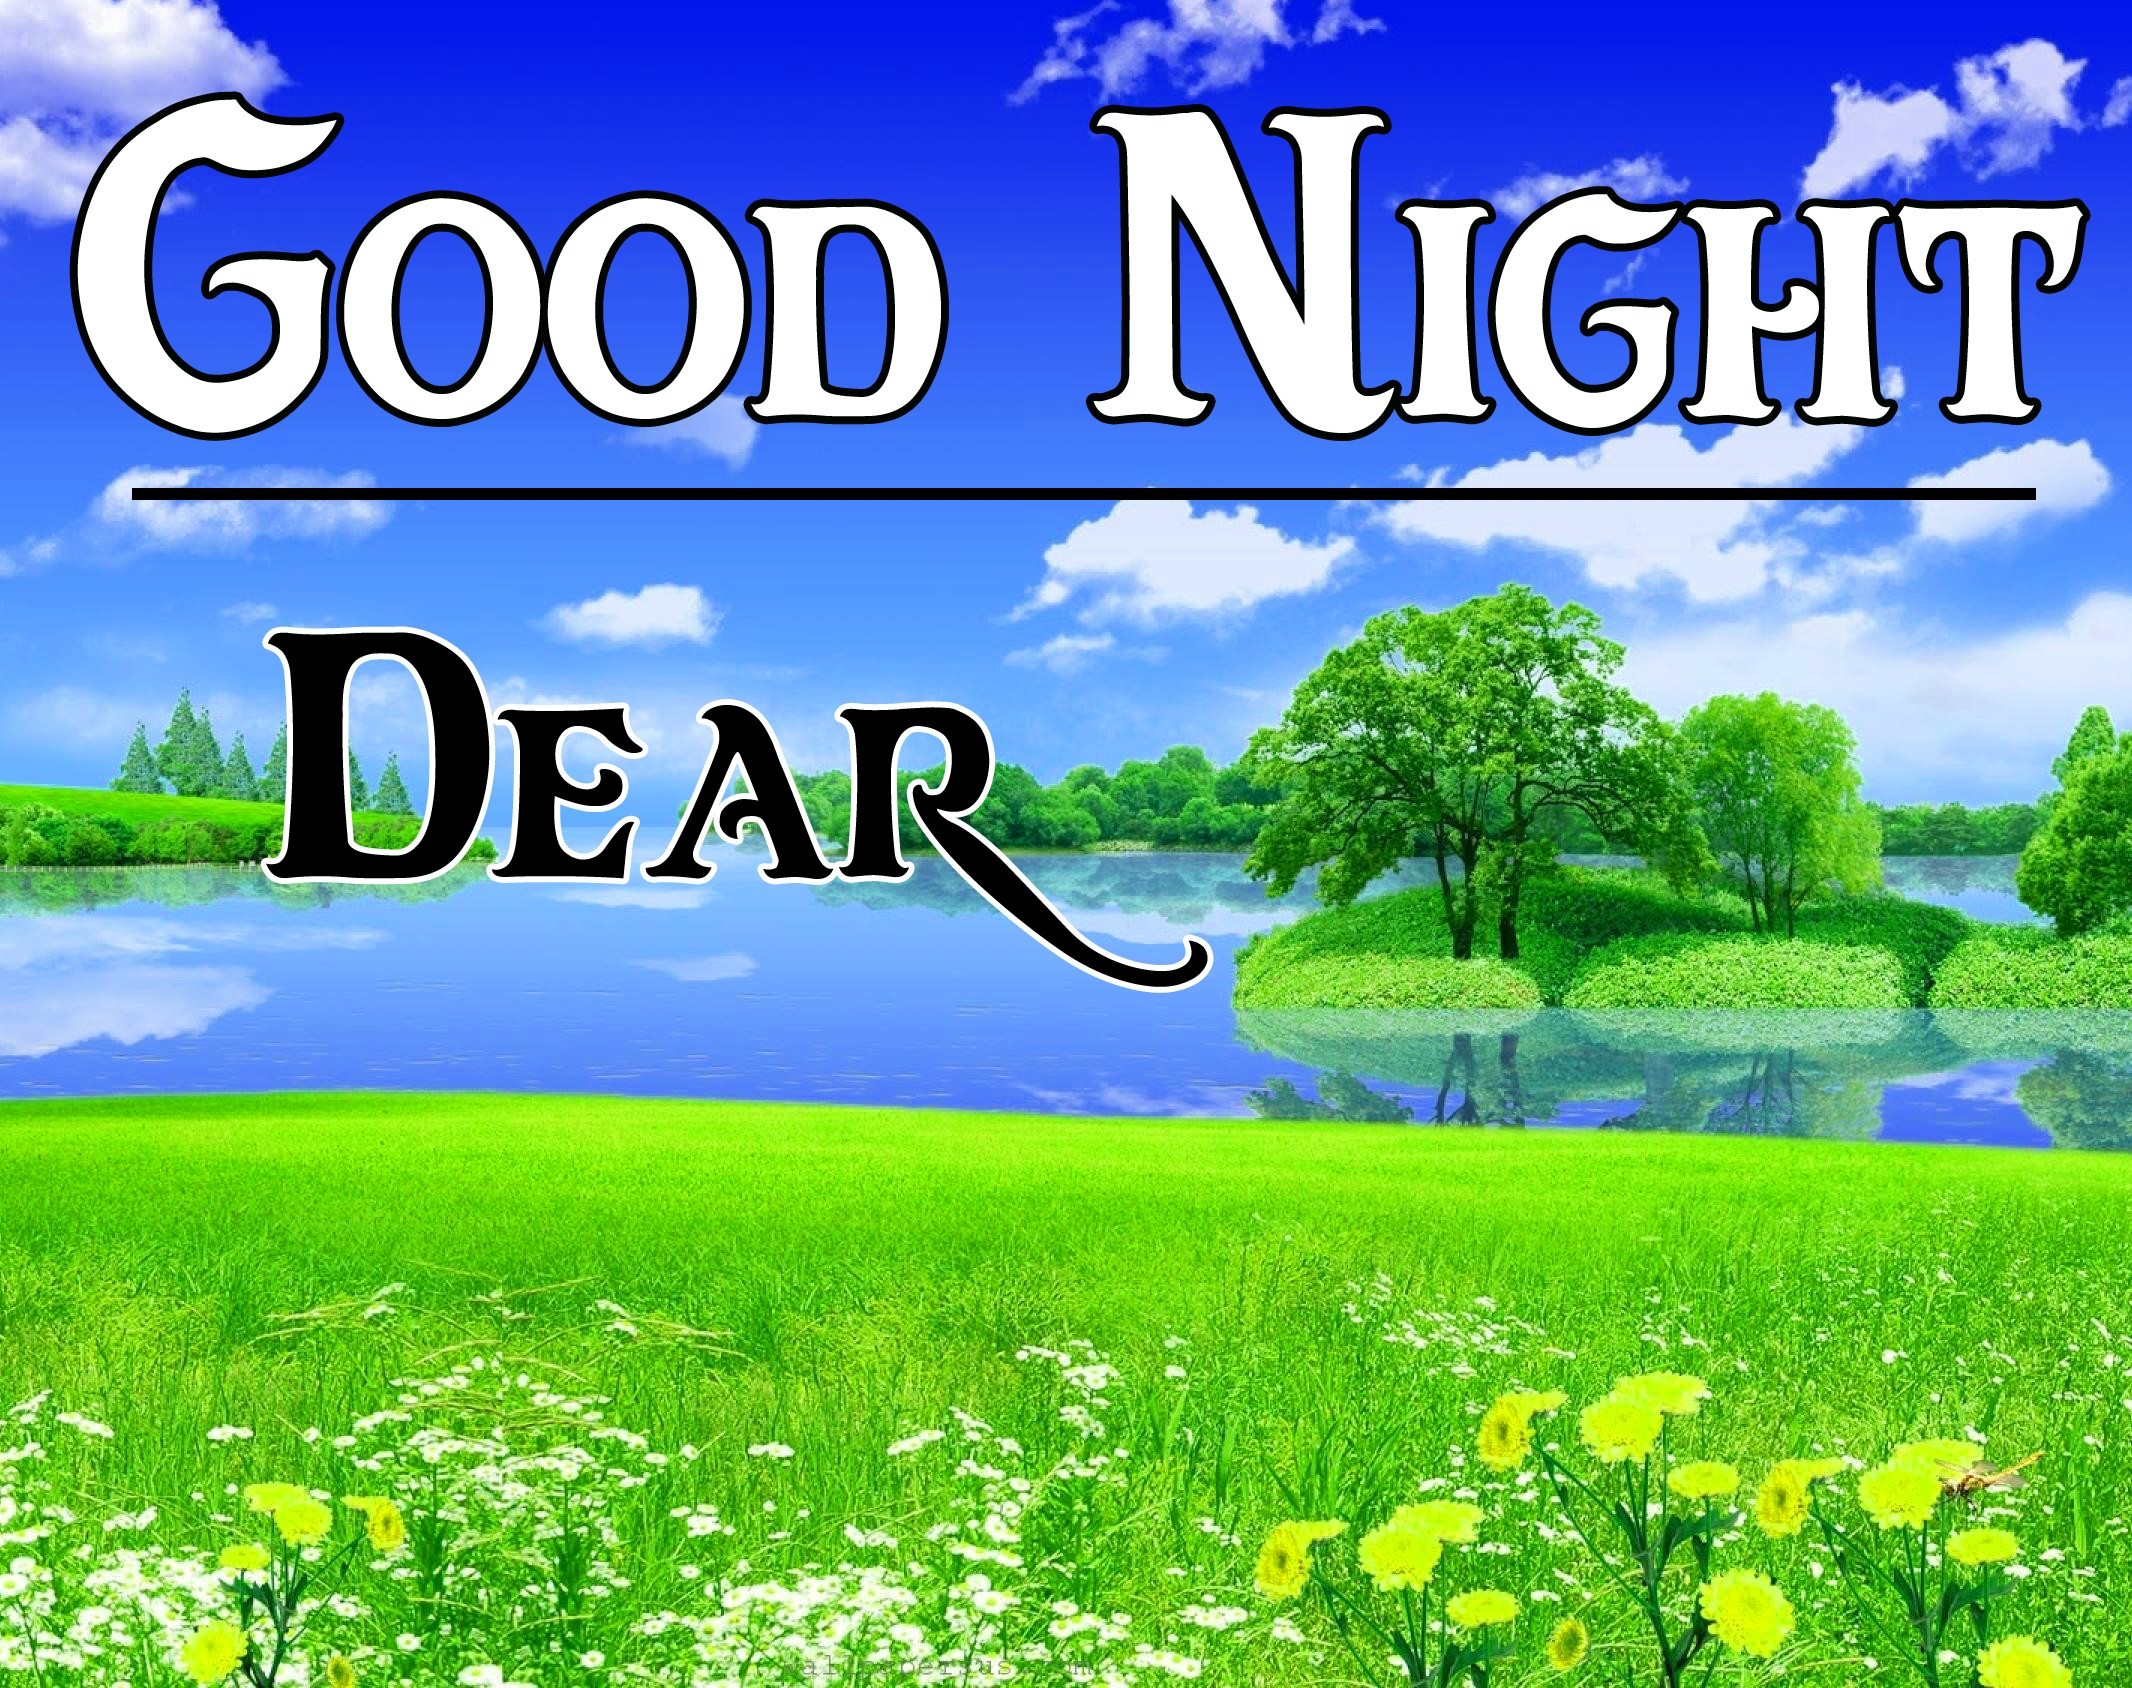 Good night wallpaper hd 36 1